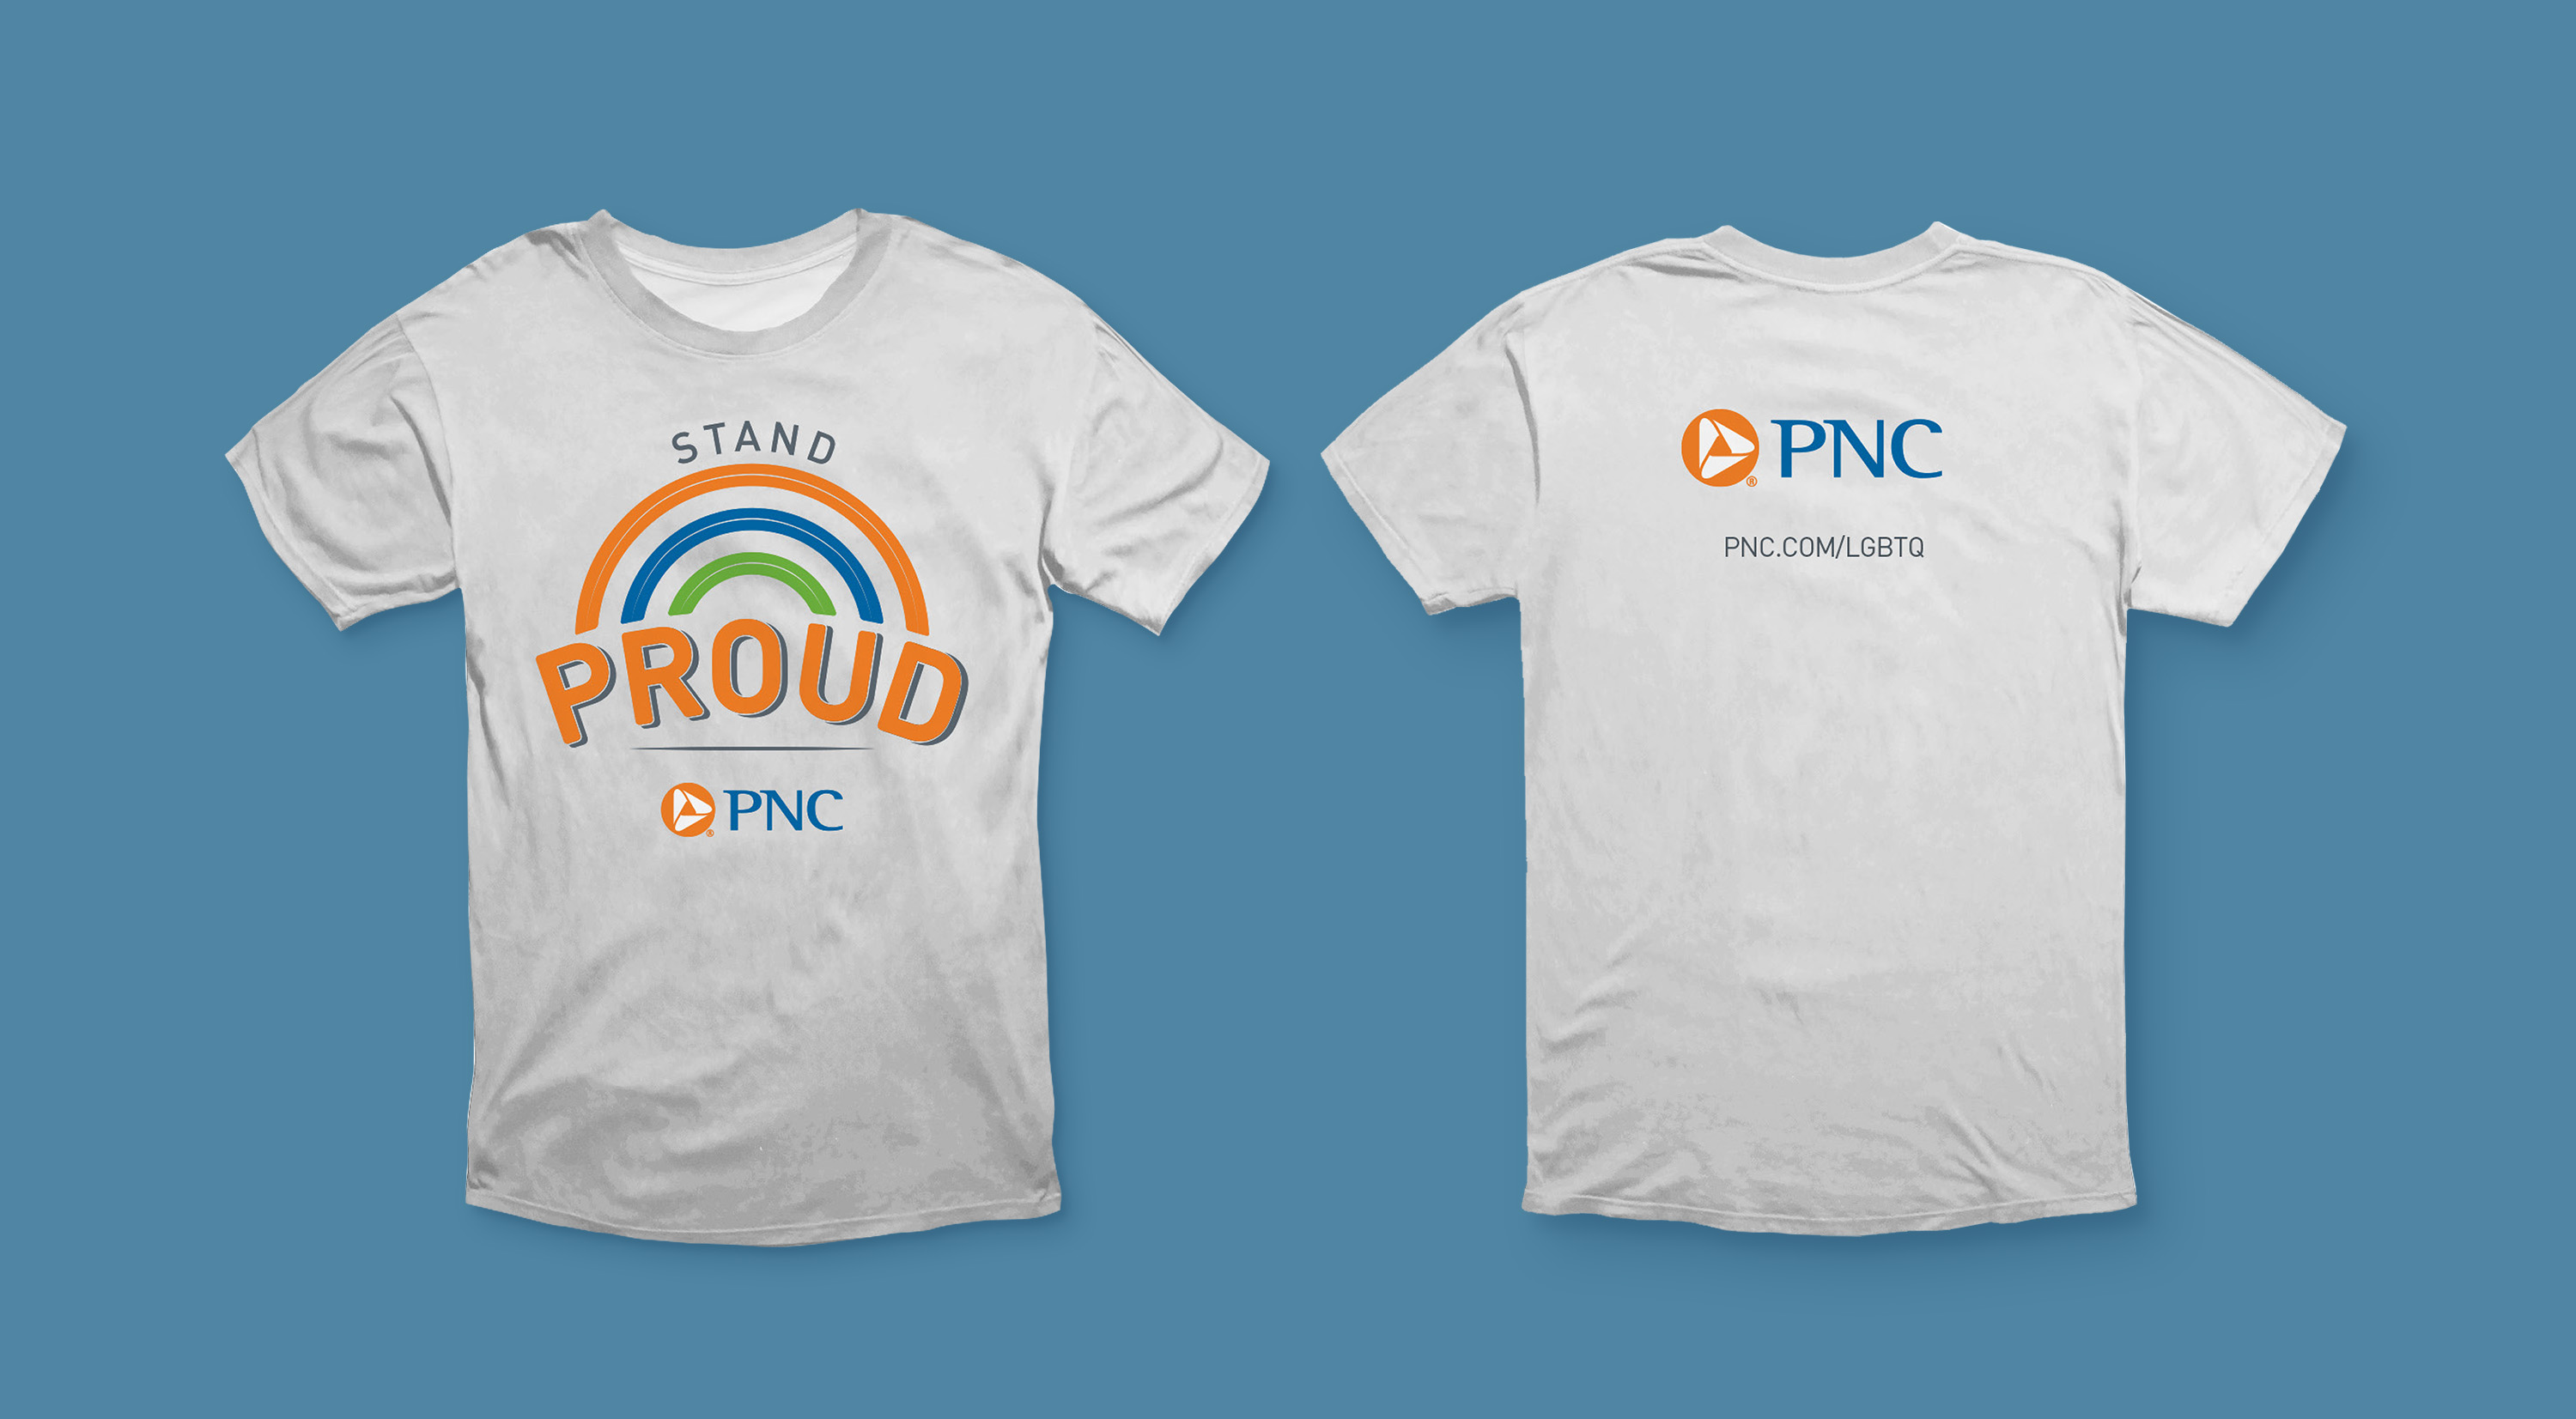 """A mockup of the front and back of a light gray t-shirt over a blue background. The front features a large rainbow graphic in orange, blue, and green, with the words """"Stand Proud"""" and the PNC logo. The back features the PNC logo and a URL reading """"pnc.com/LGBTQ."""""""